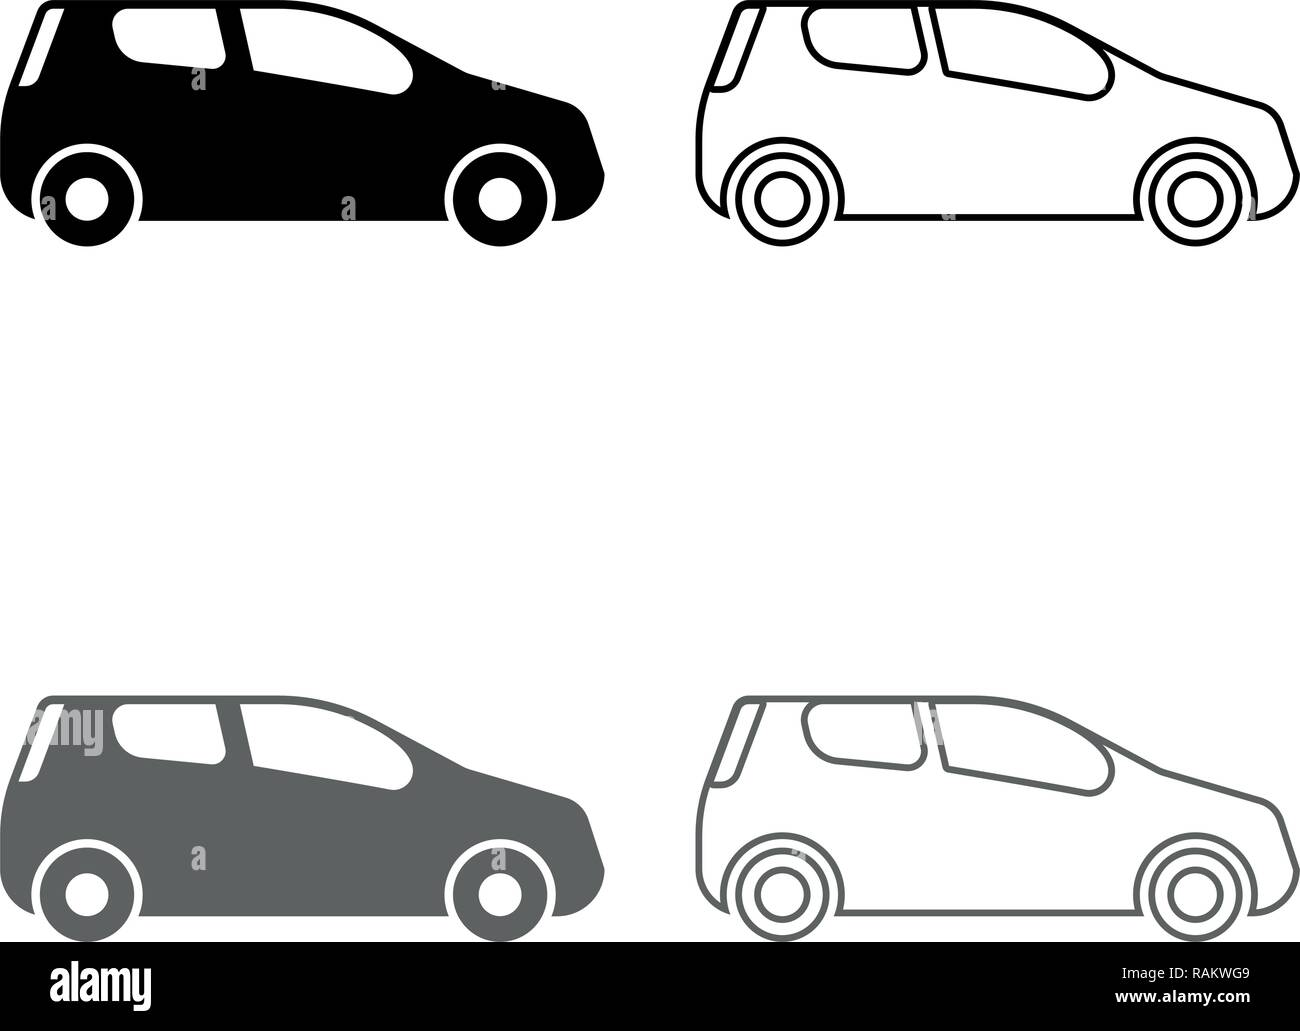 Mini car Compact shape for travel racing icon set grey black color vector I outline flat style simple image - Stock Image